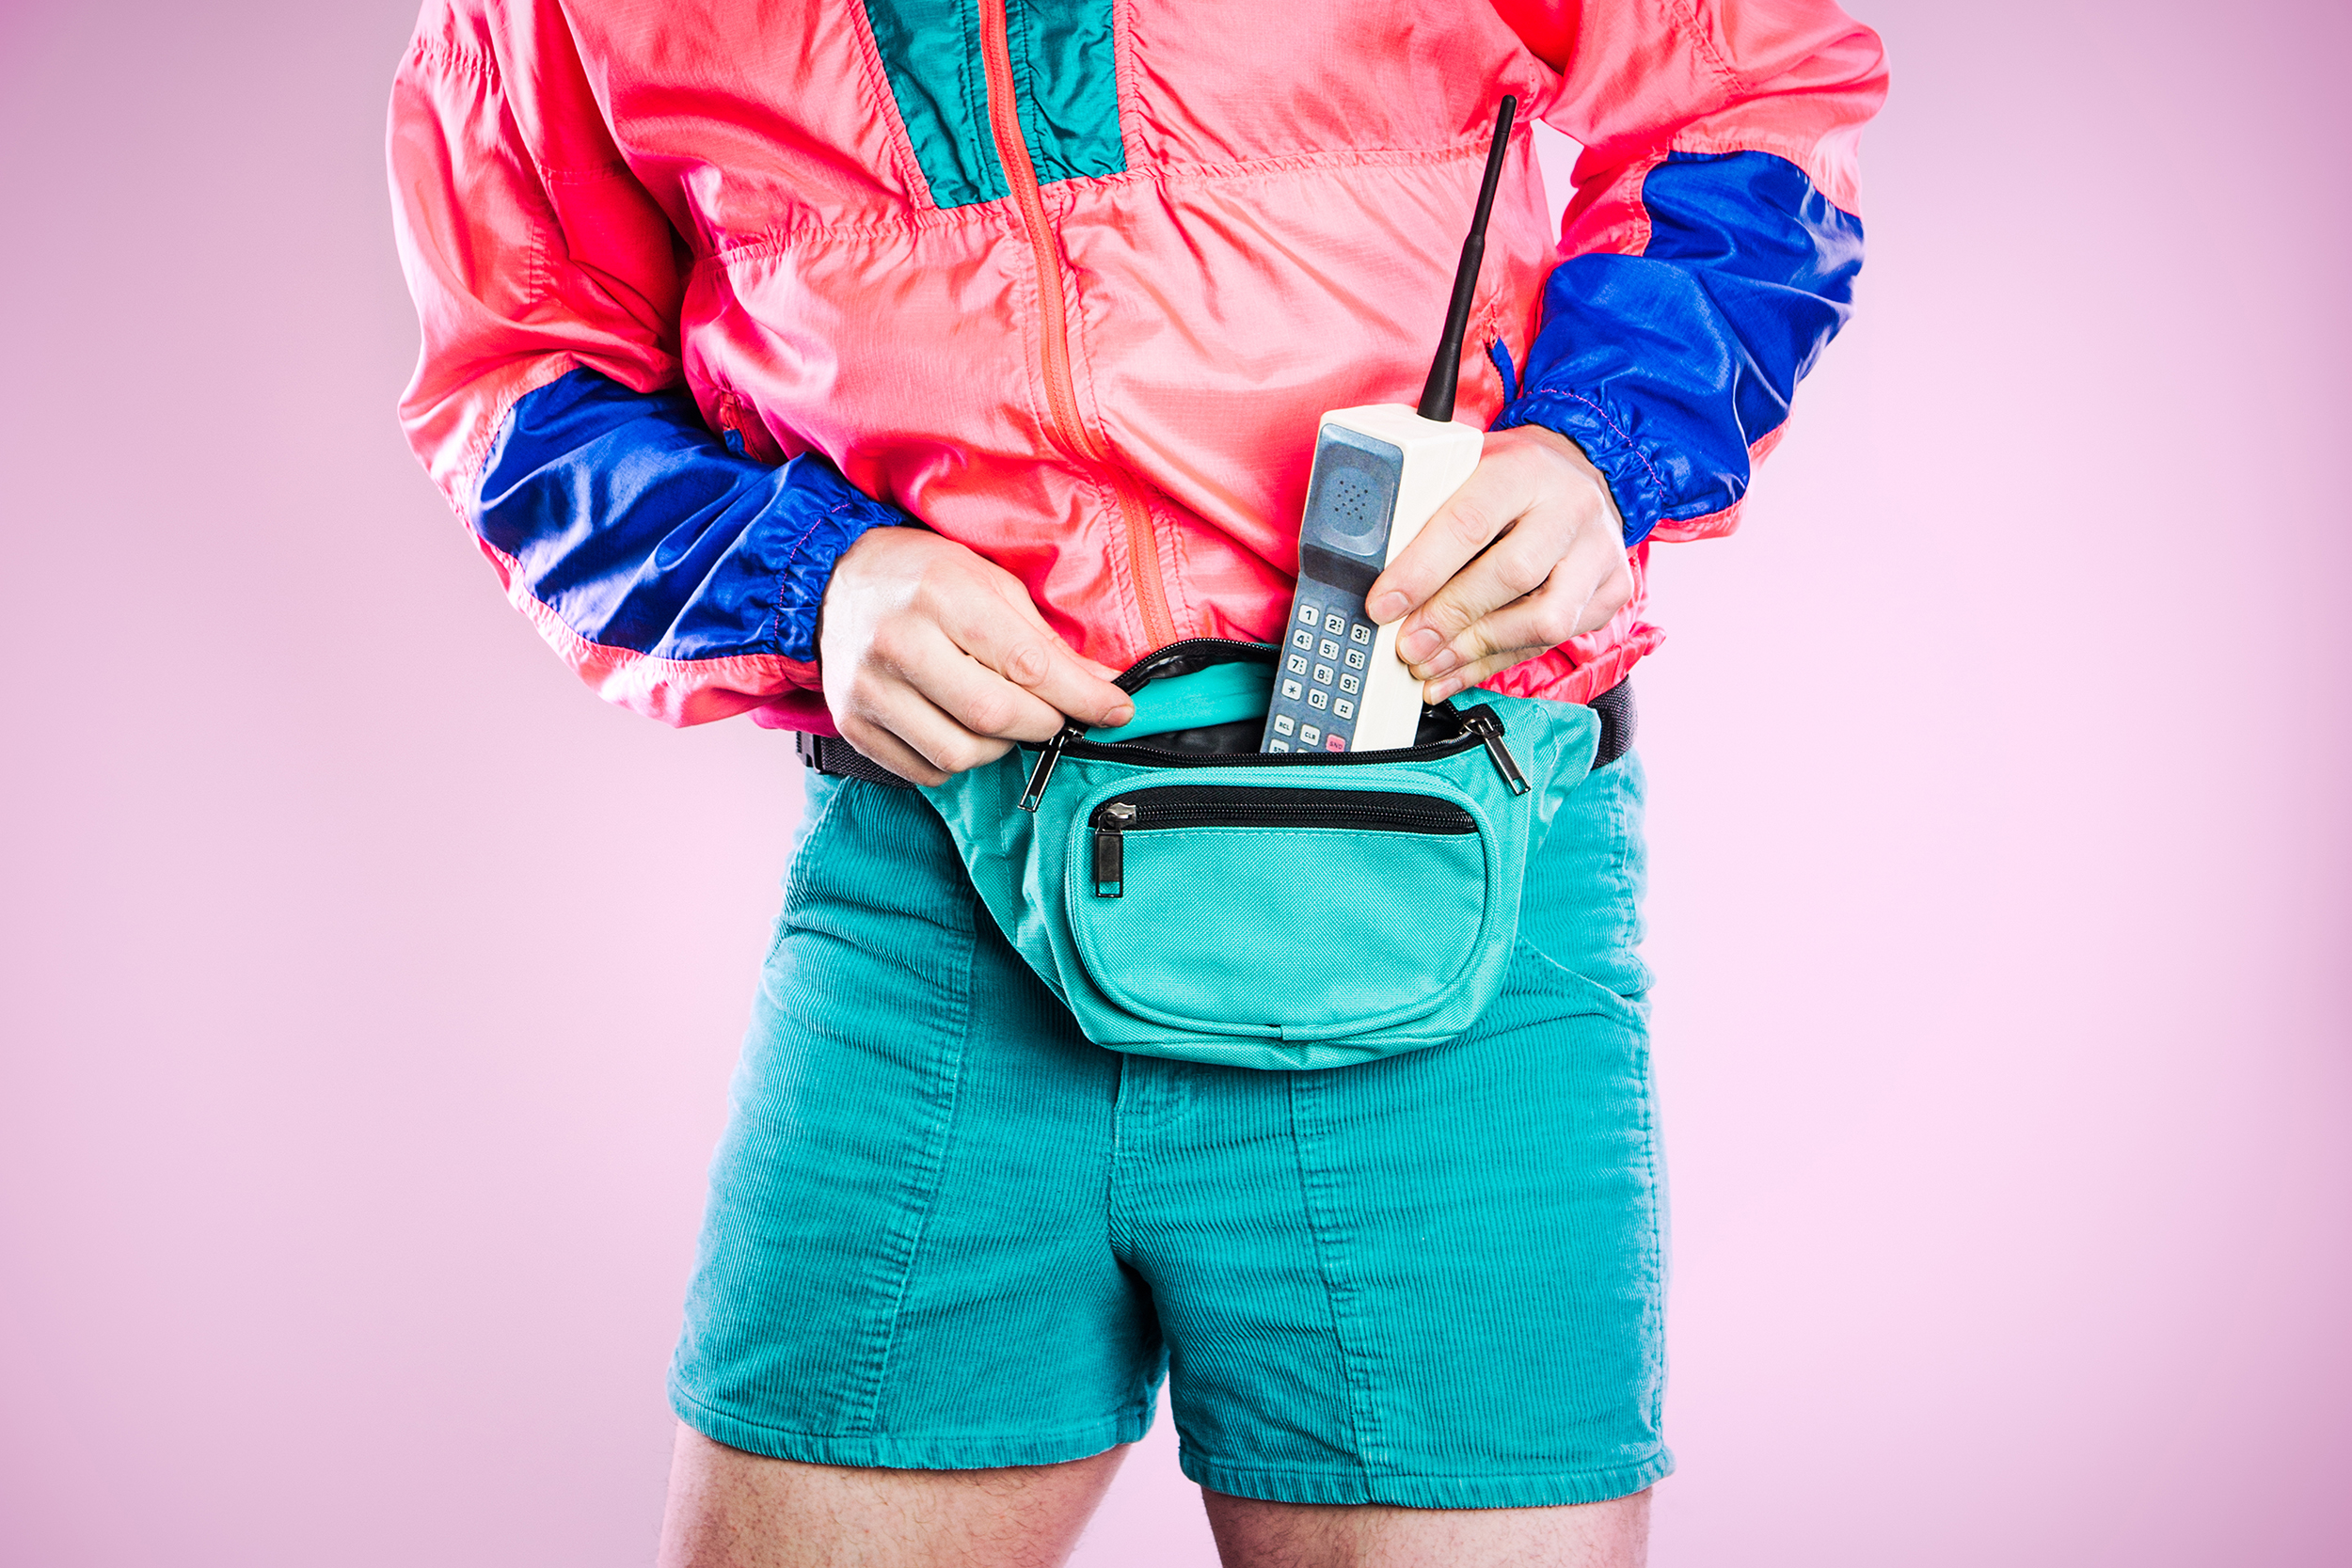 de08b46a6ba Fanny packs are so popular, they make up 25 percent of accessory sales  growth